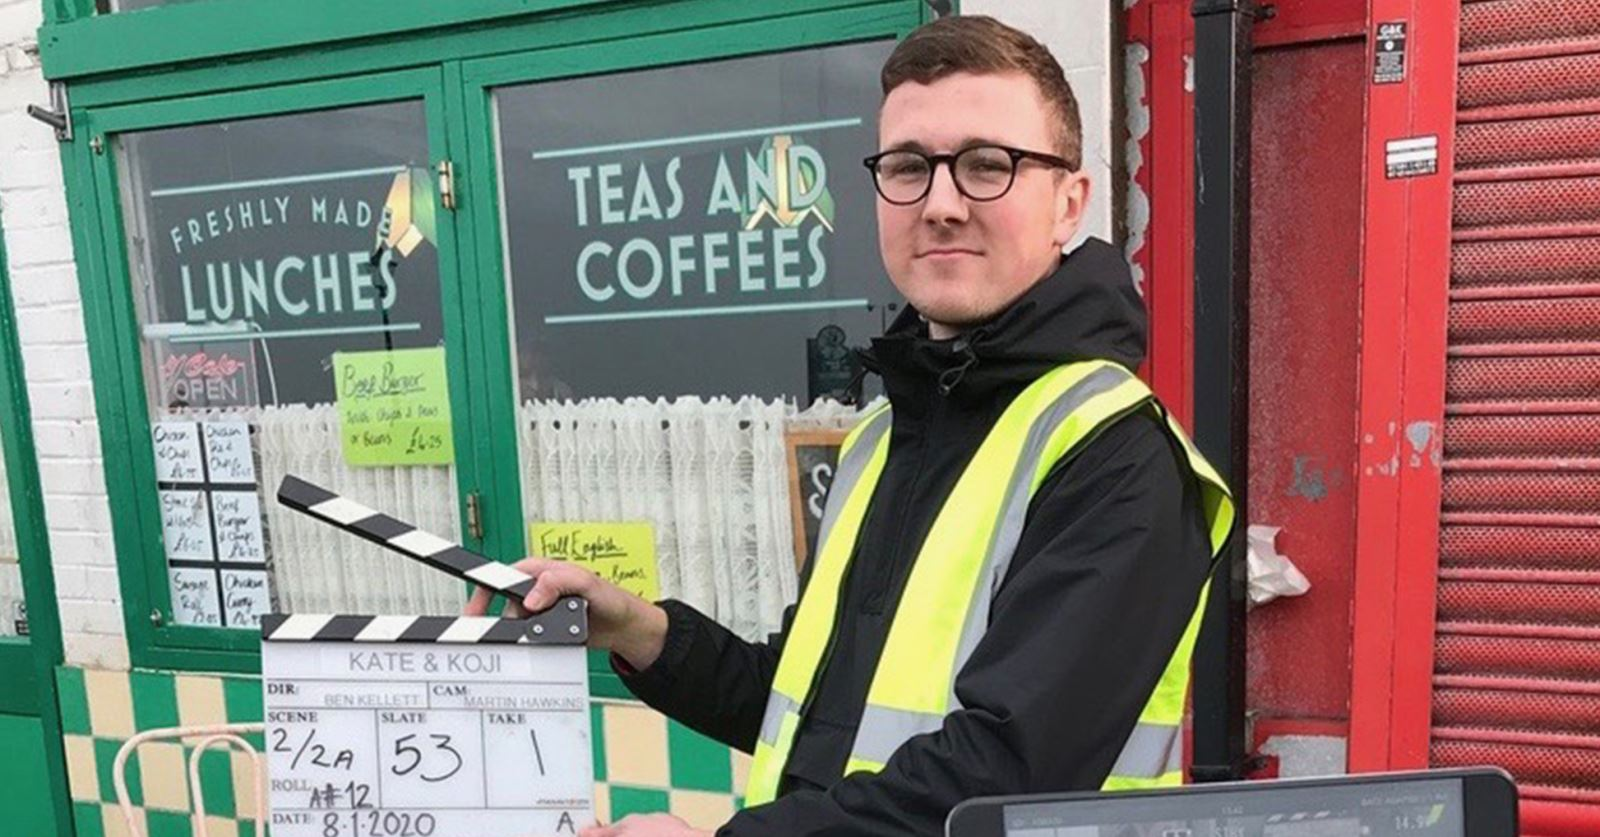 Dennis Griscenko, runner-up in the 2019 GTC Bill Vinten Awards, has just enjoyed work experience with DoP Martin Hawkins